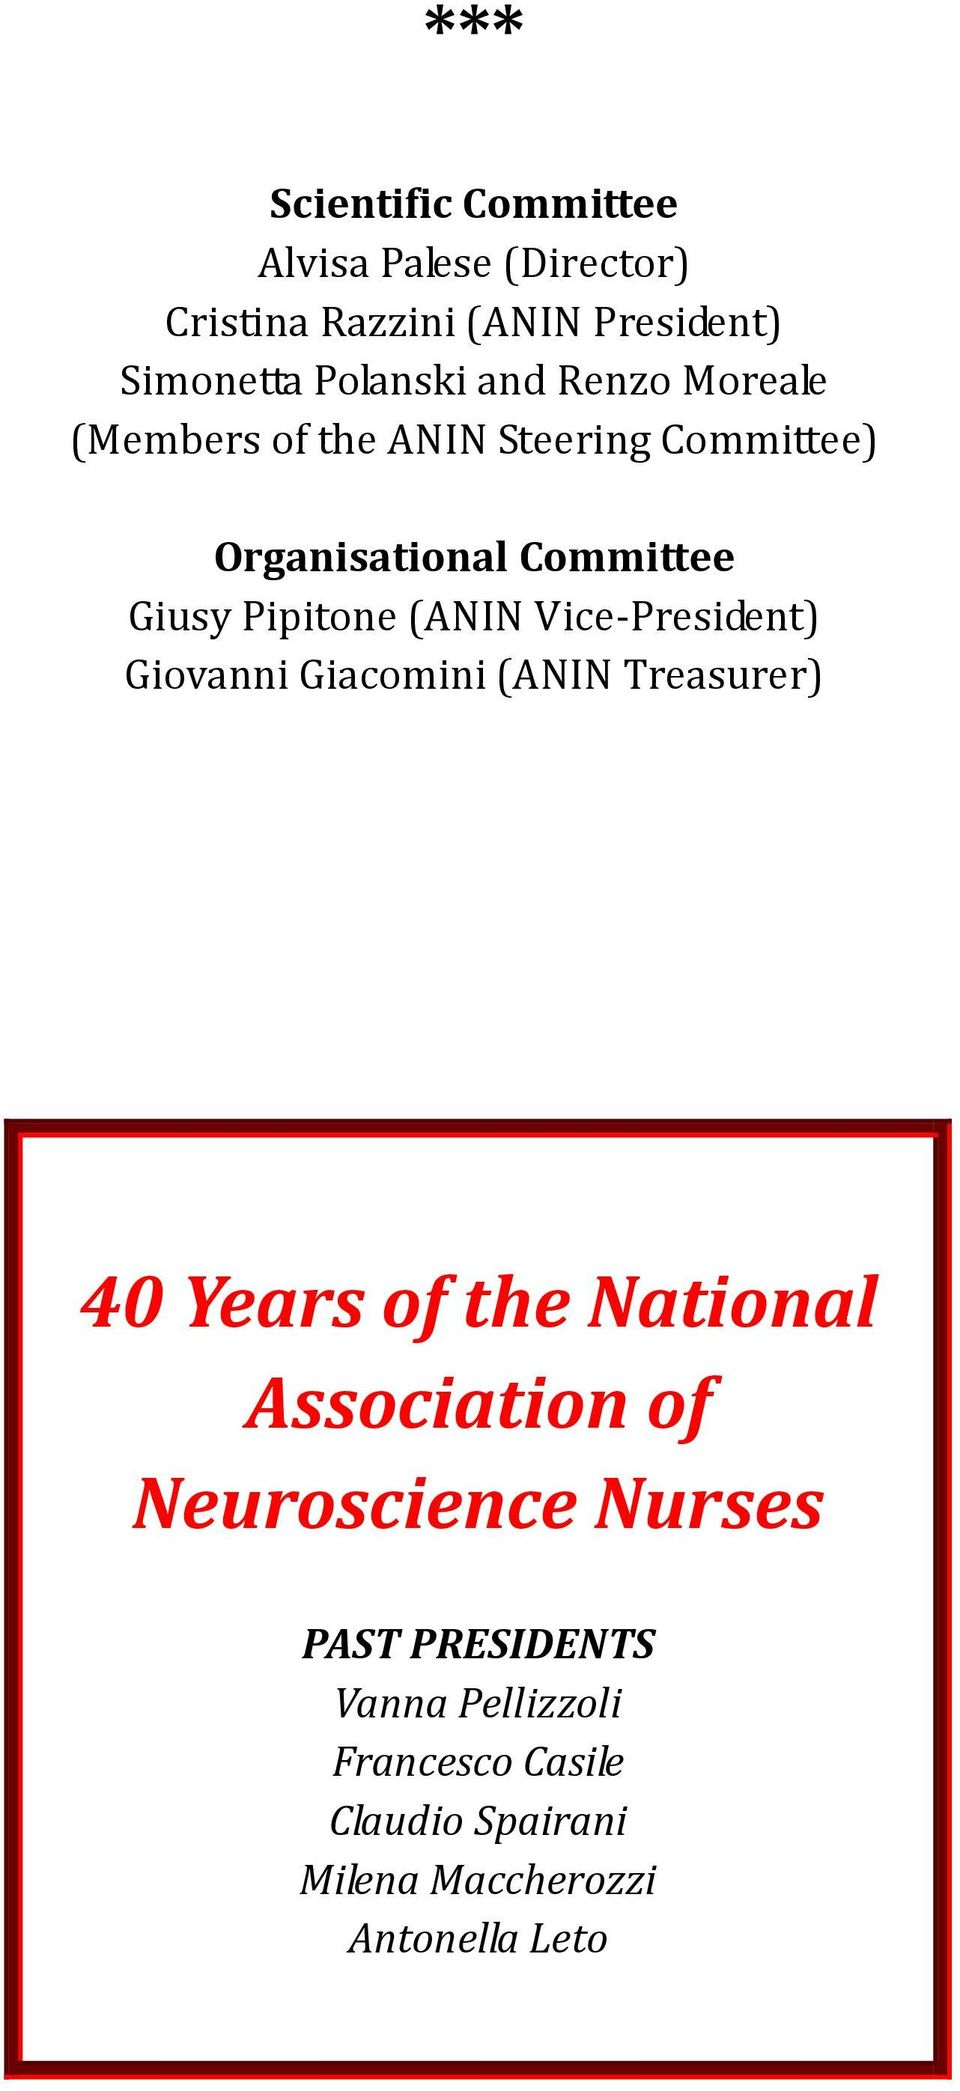 Vice-President) Giovanni Giacomini (ANIN Treasurer) 40 Years of the National Association of Neuroscience